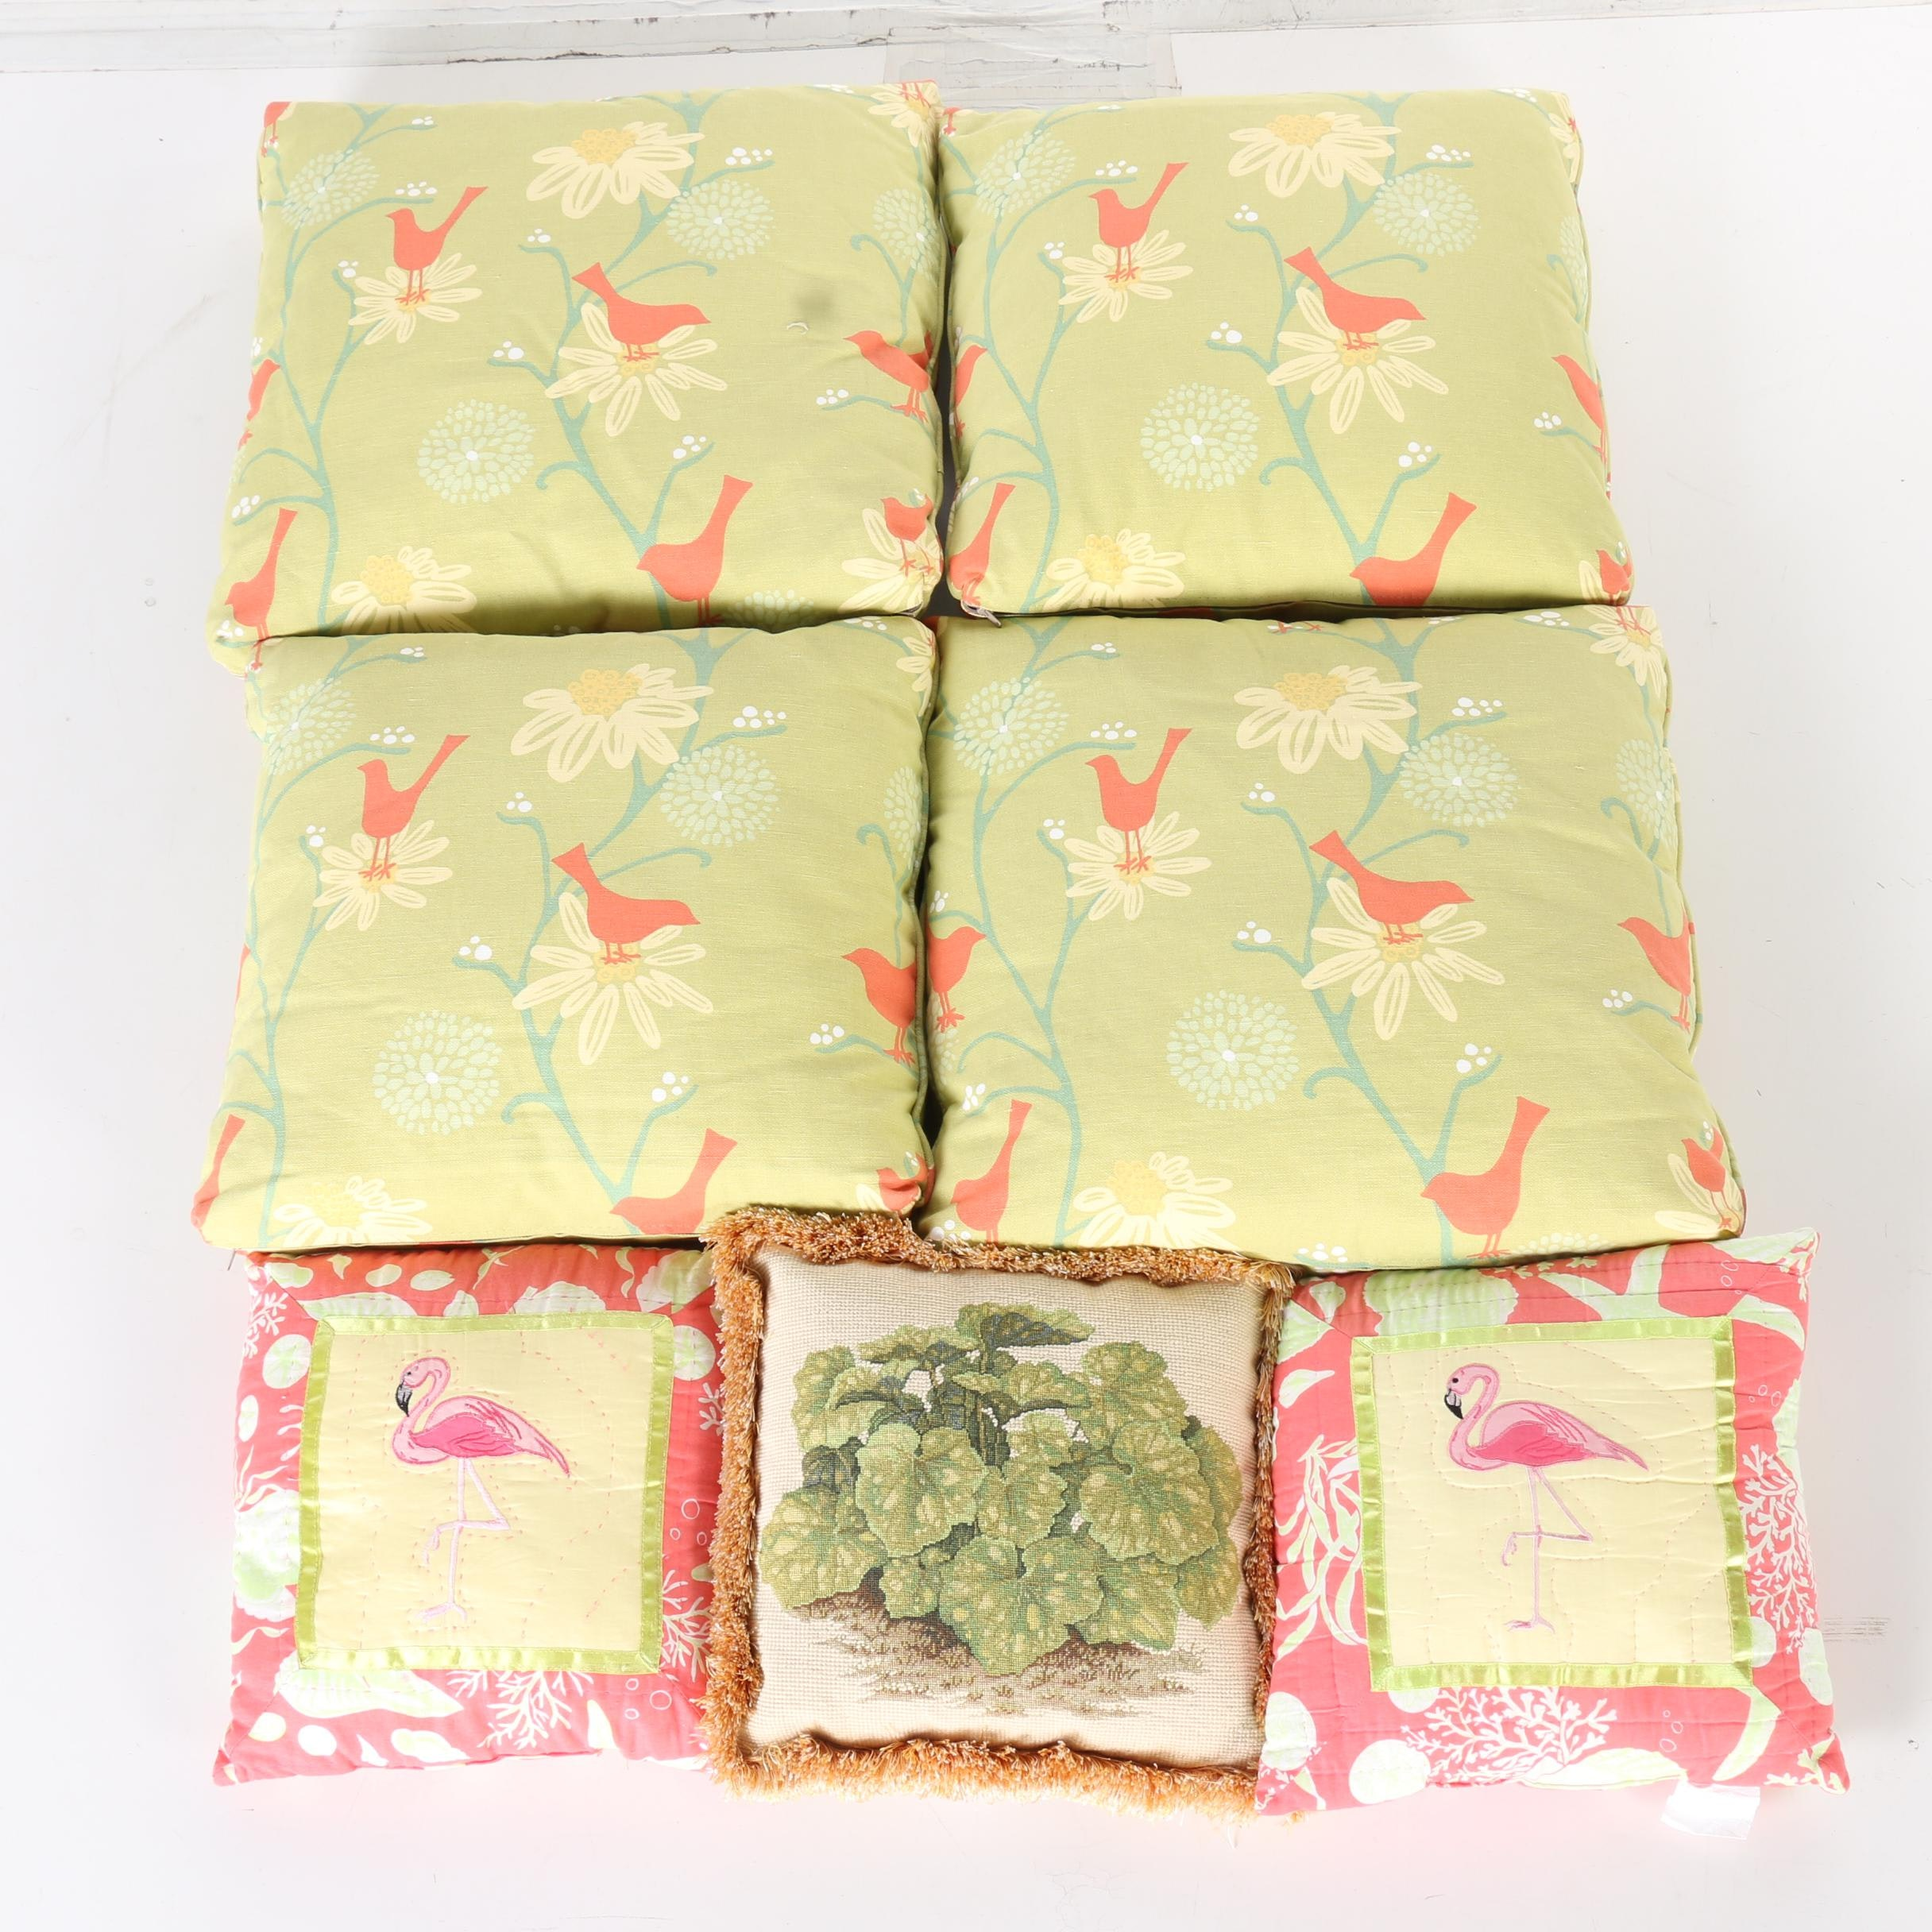 Throw Pillows With Bird and Foliage Designs